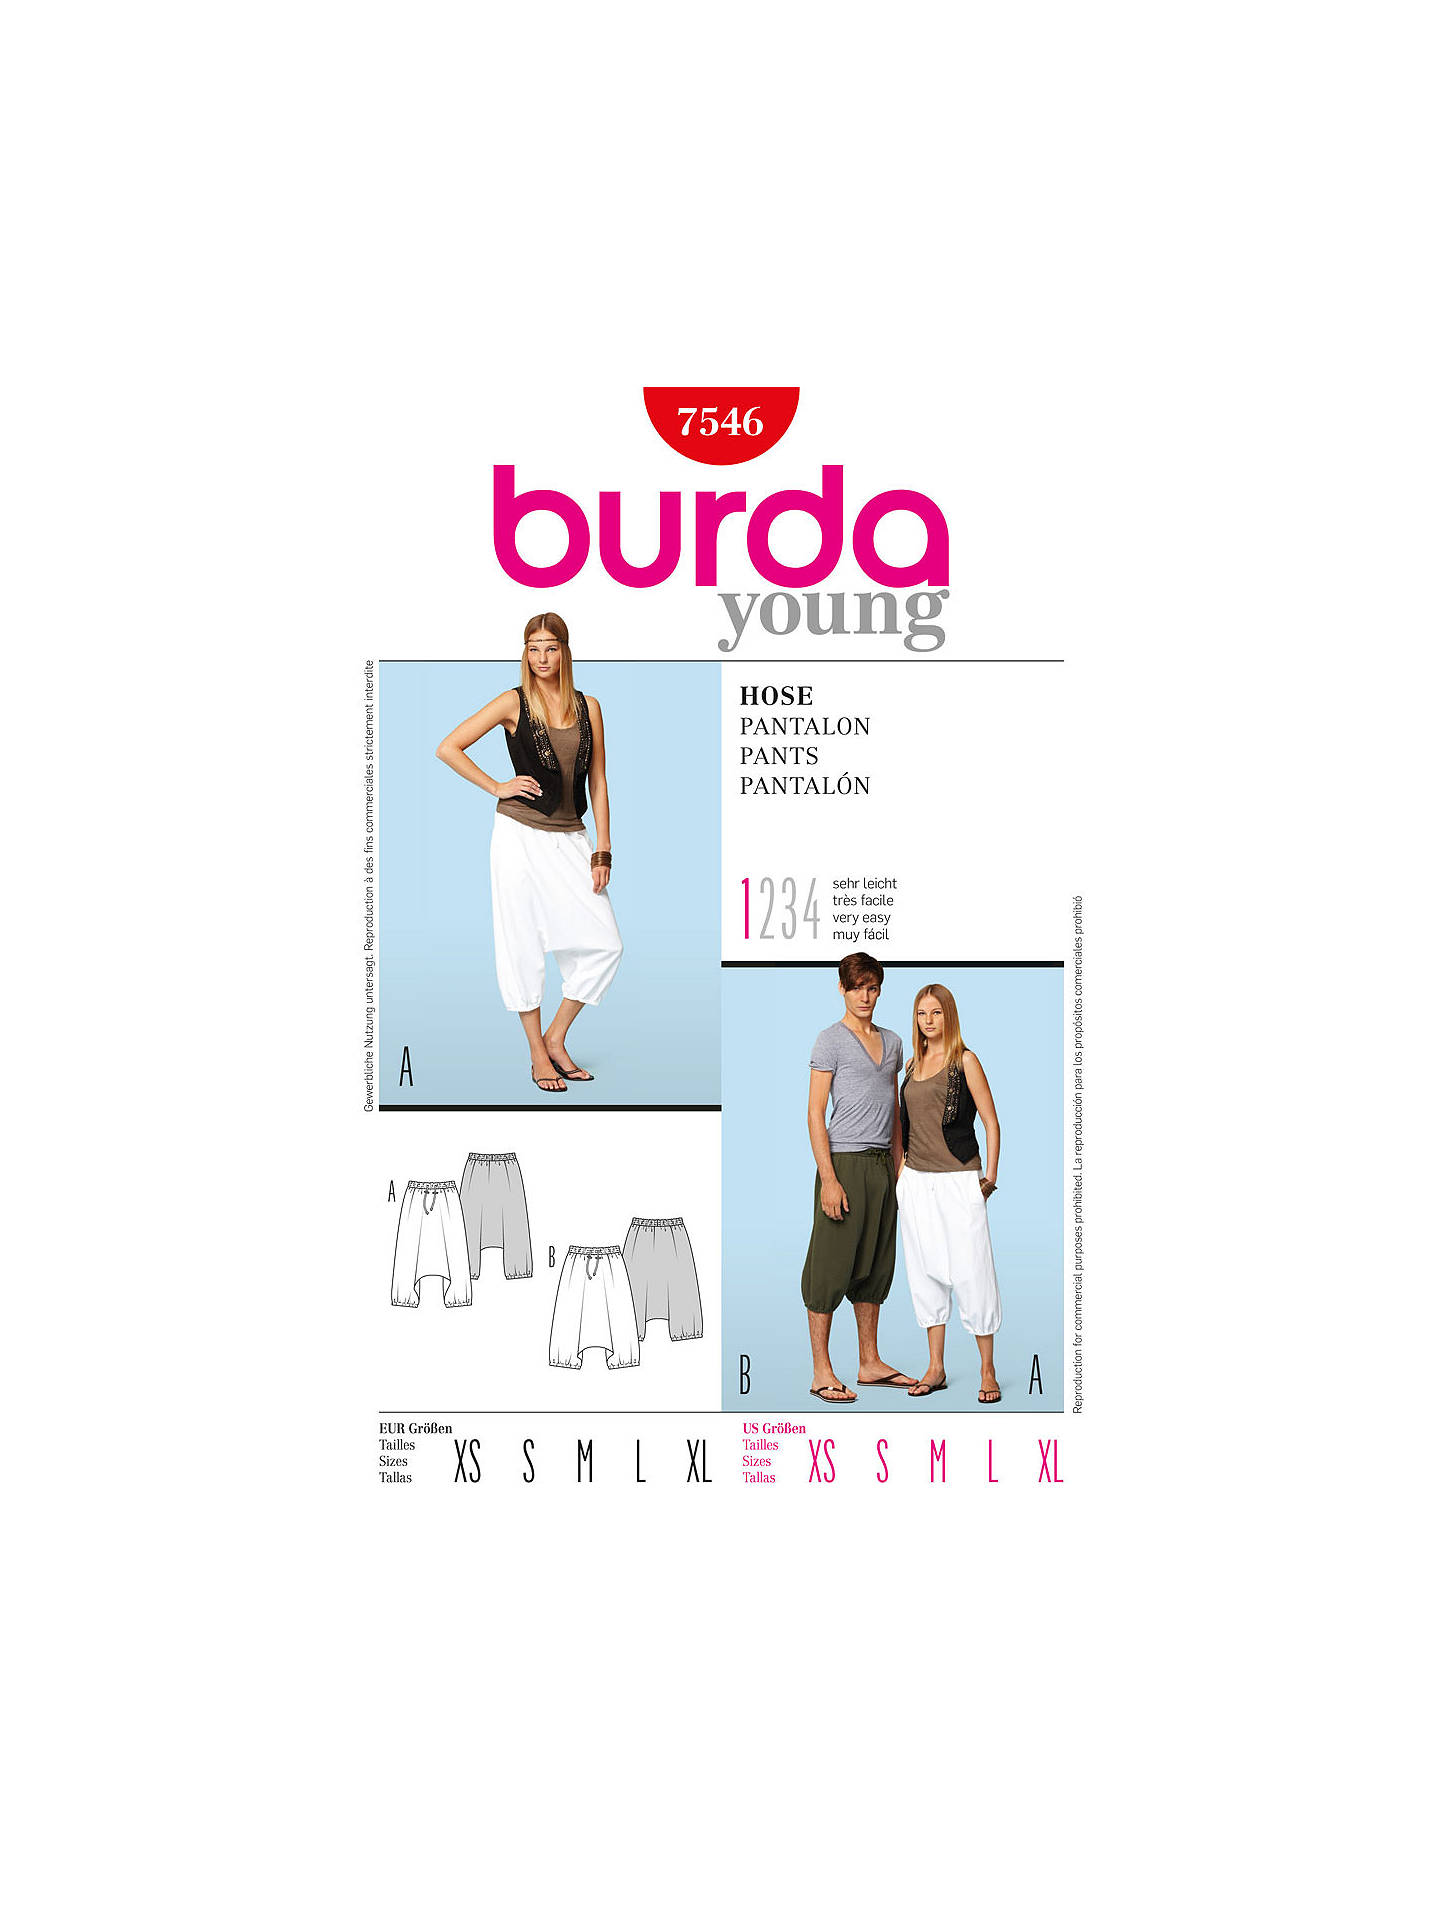 Burda Unisex Harem Trousers Sewing Pattern, 7546 at John Lewis ...